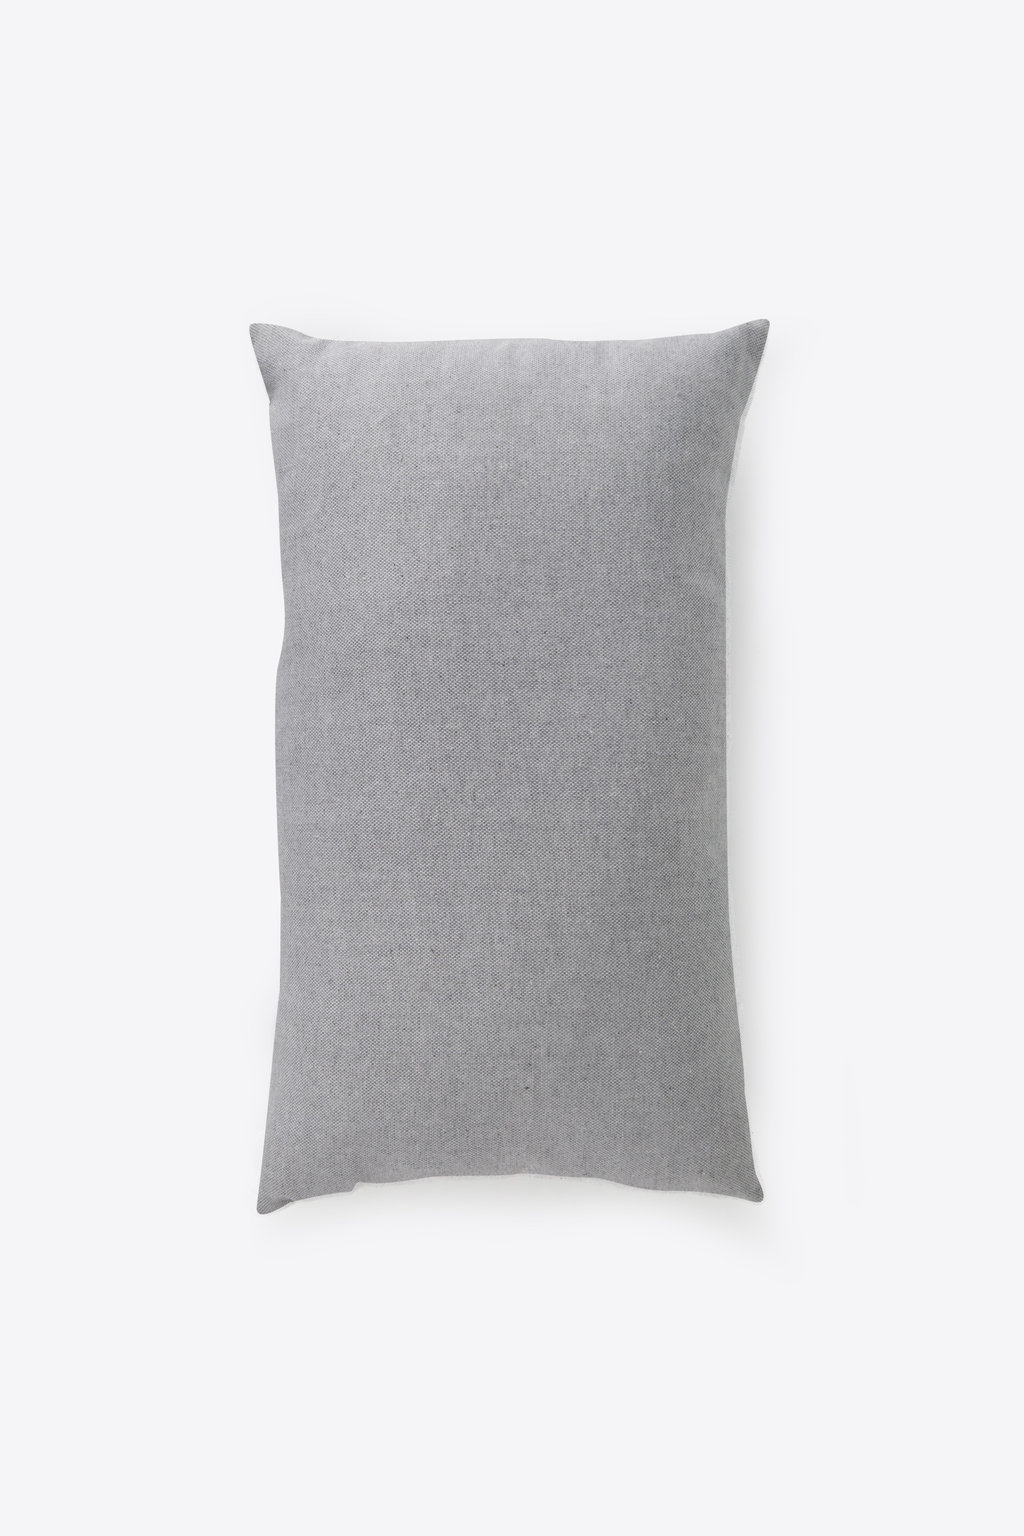 Rectangle Pillow 1843 Light Gray 1